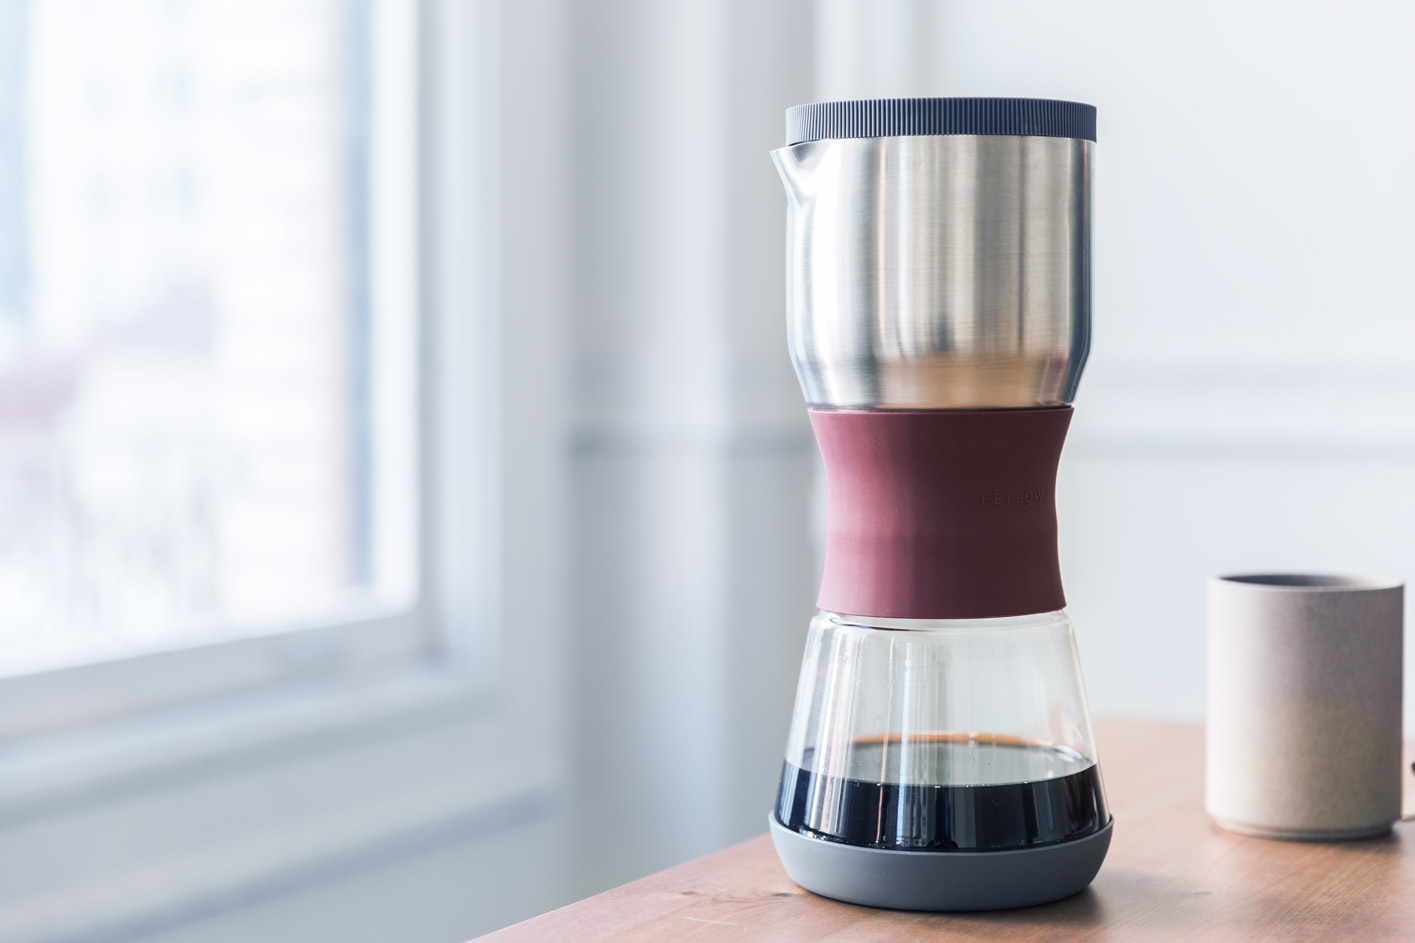 Compact Slow Drip Coffee Brewers Are Accumulating Fast Daily Iwaki Water Server 4 Cup The Duo Steeper Immersion Brewing With A Twist